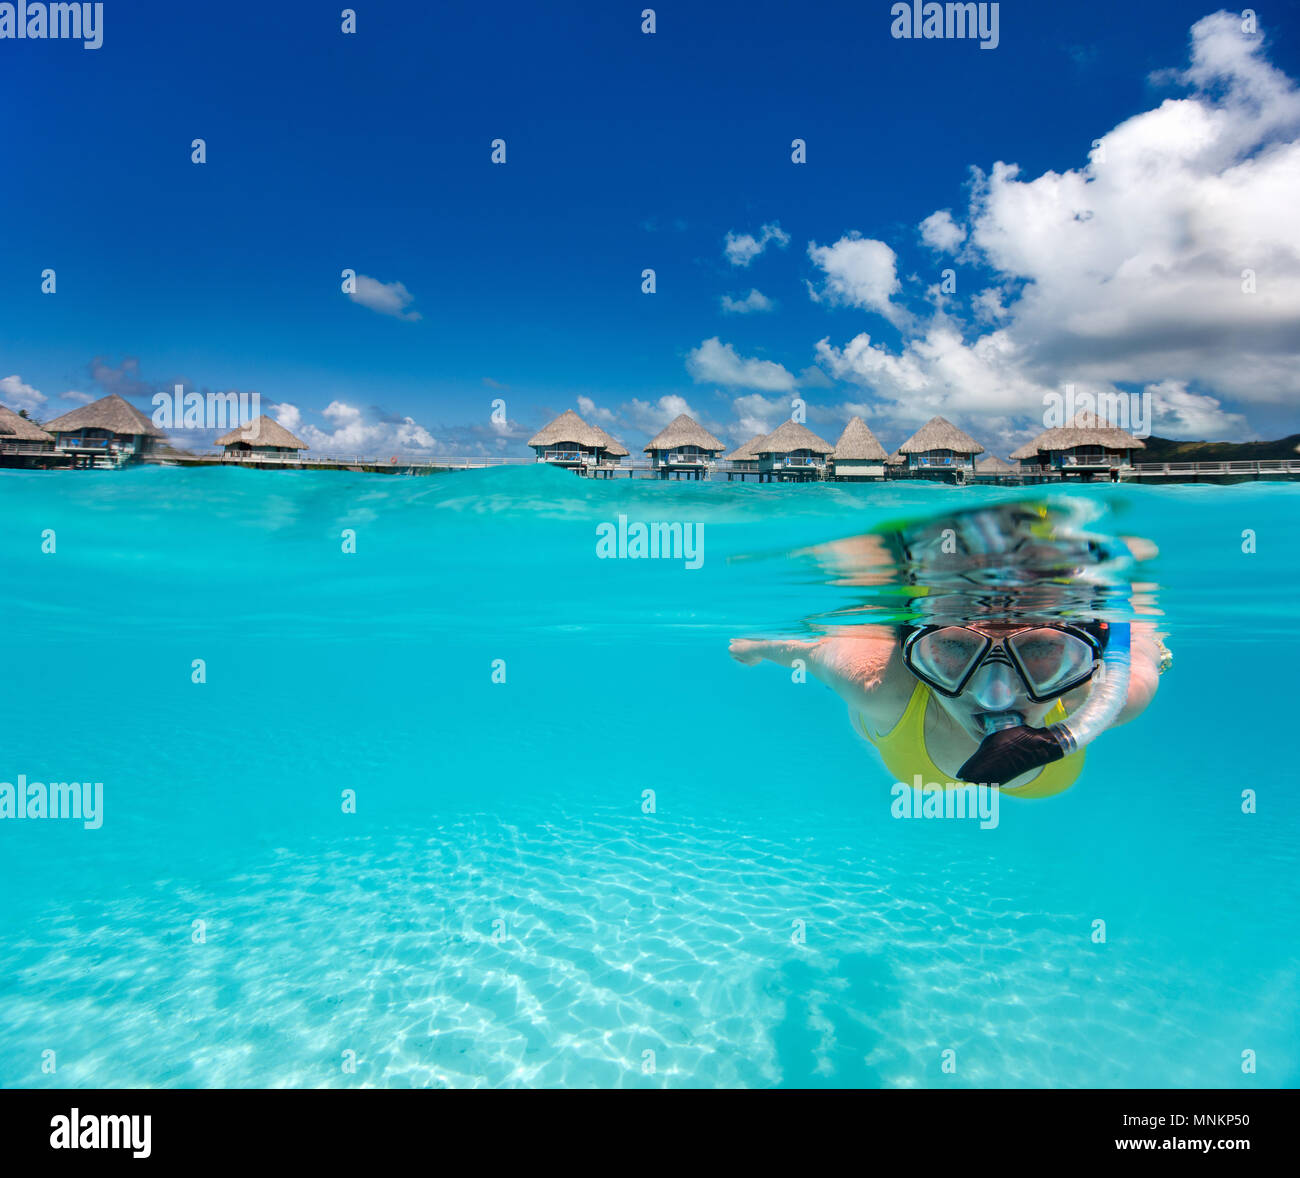 Underwater photo of woman snorkeling in clear tropical waters in front of overwater villas - Stock Image